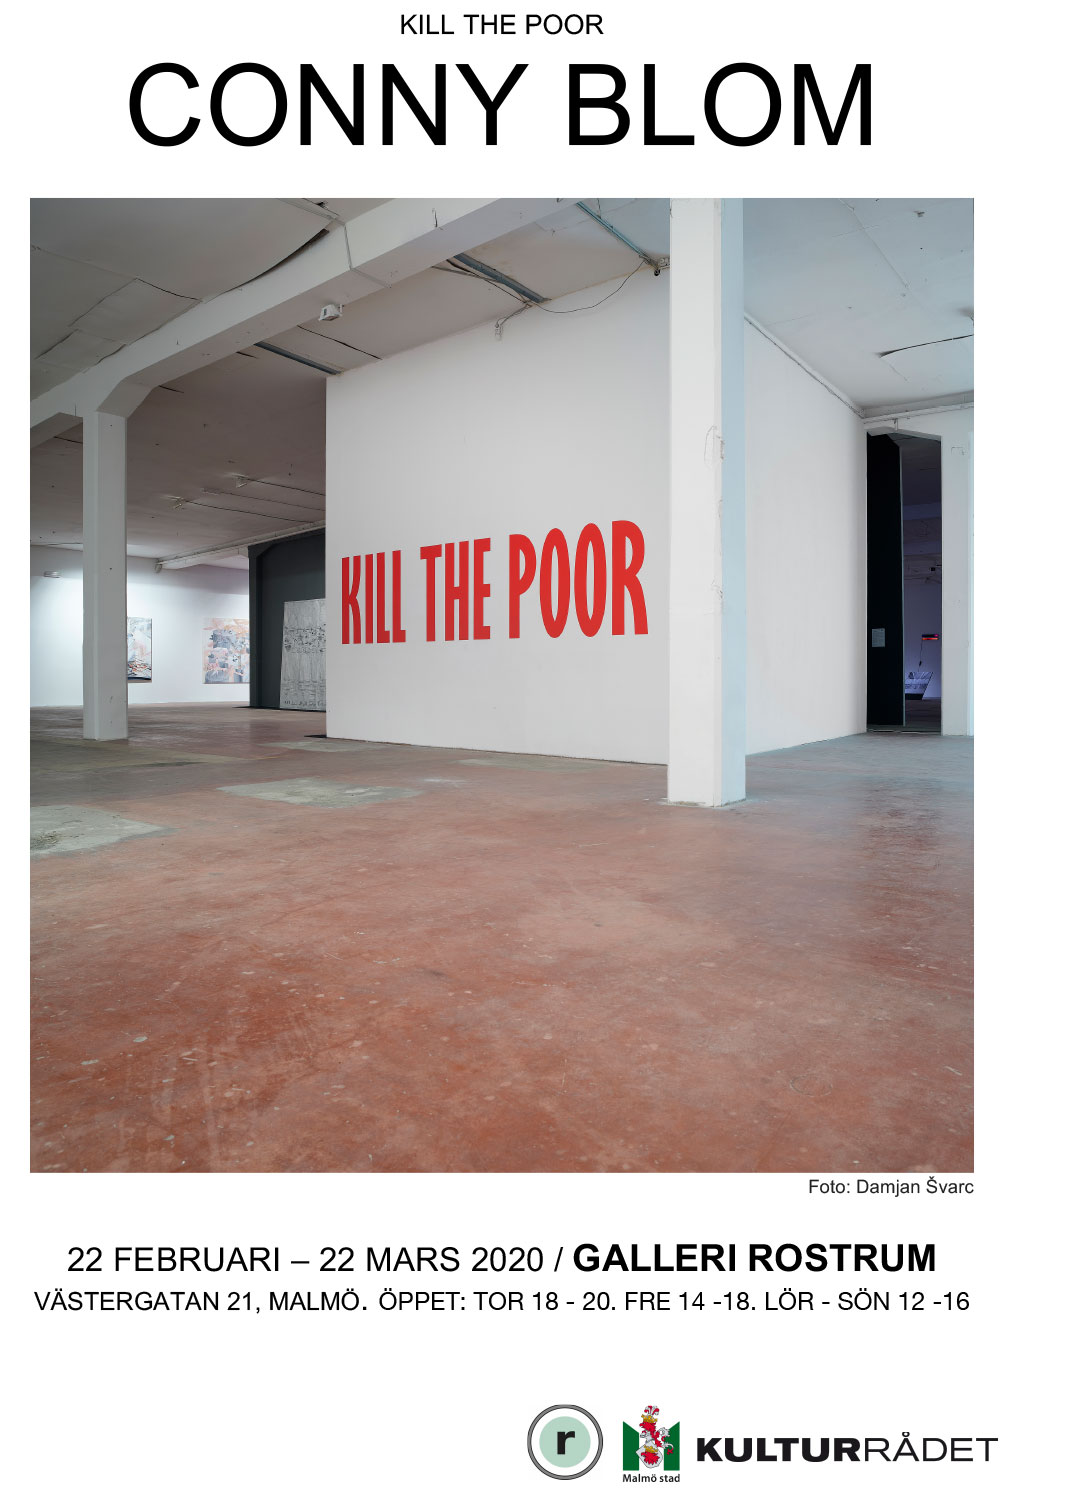 Conny Blom, Kill the poor